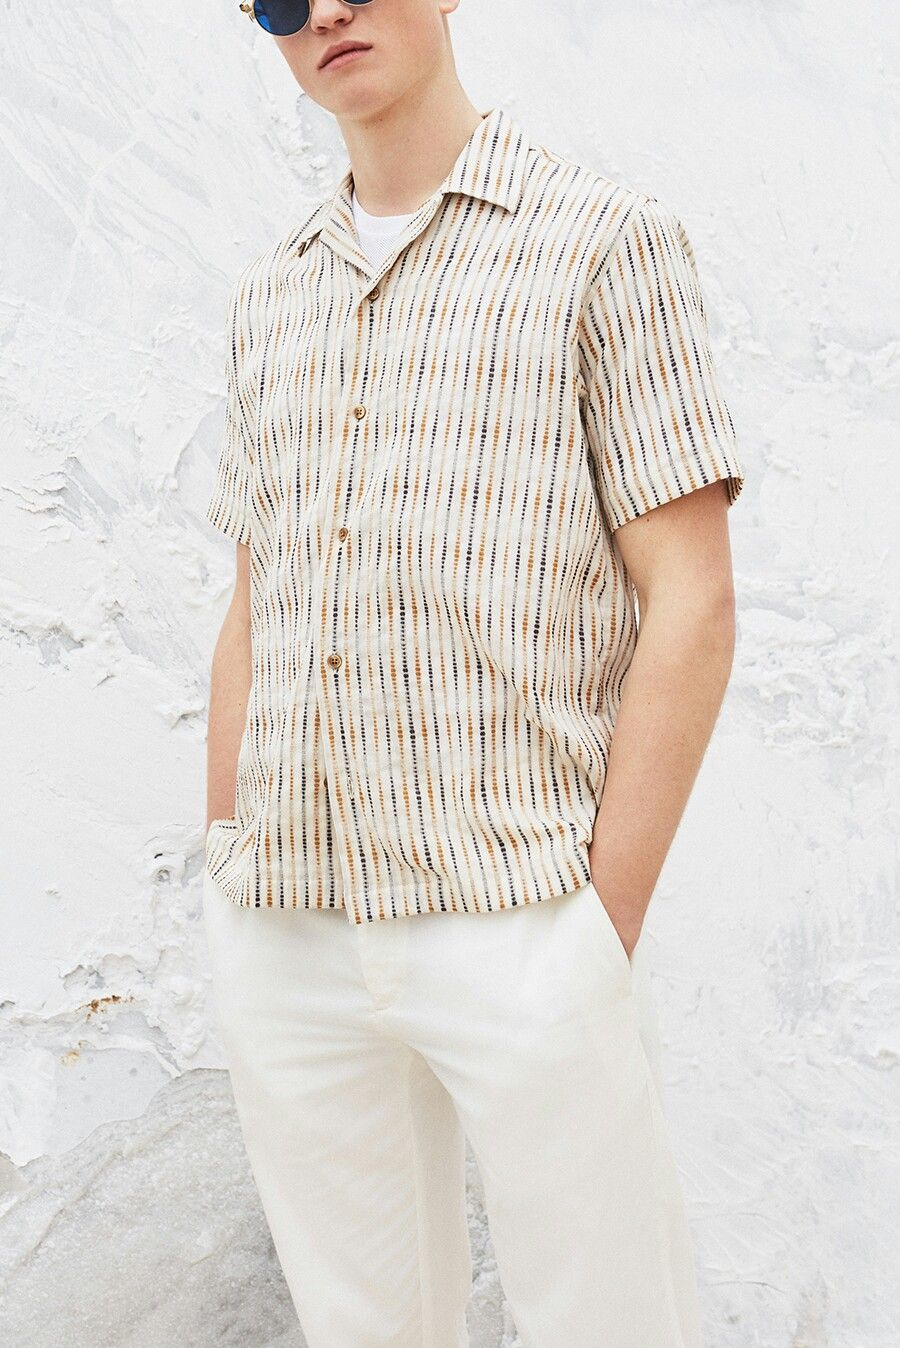 Some Summer Texture From Mr Porter Designer Clothes For Men Street Style Summer Mens Outfits